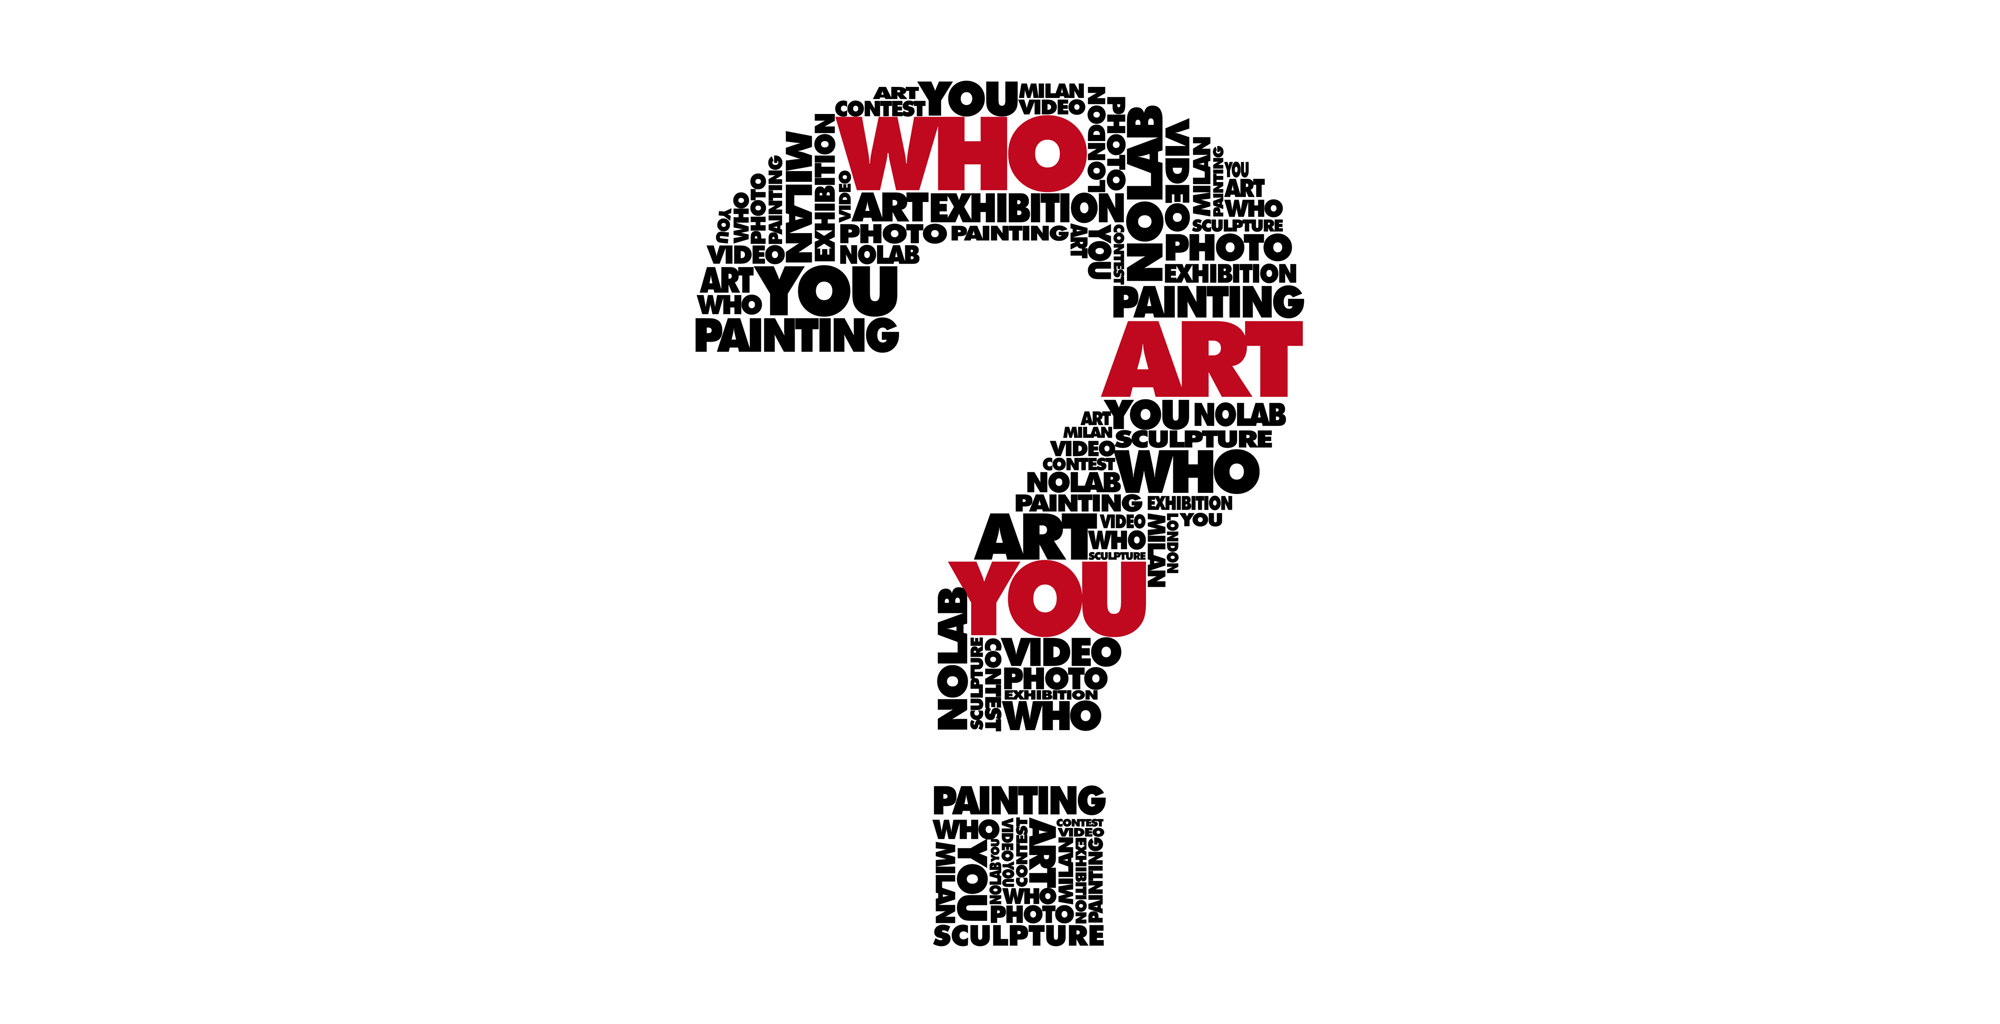 Microsoft Word - Who Art You 5_contest notice.doc